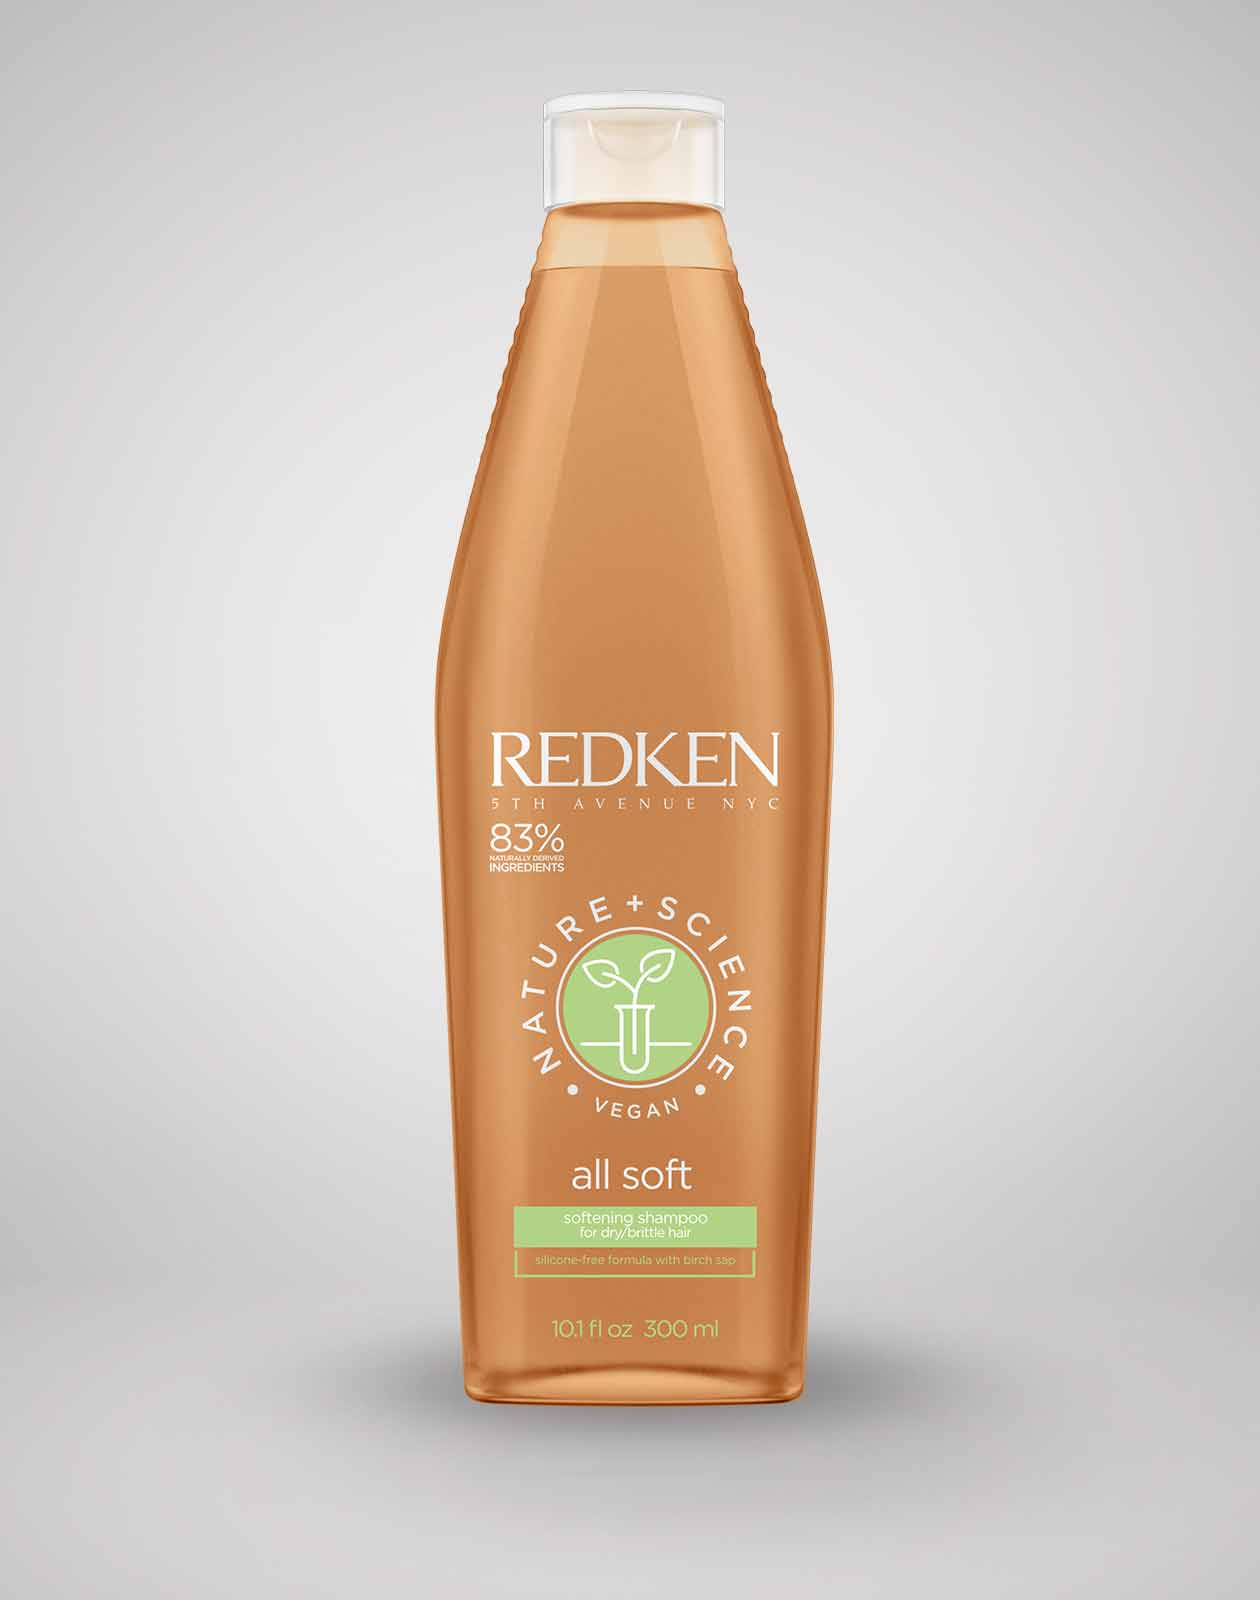 Redken 2018 Product Nature Science 1260x1600 All Soft Shampoo Gray.jpg